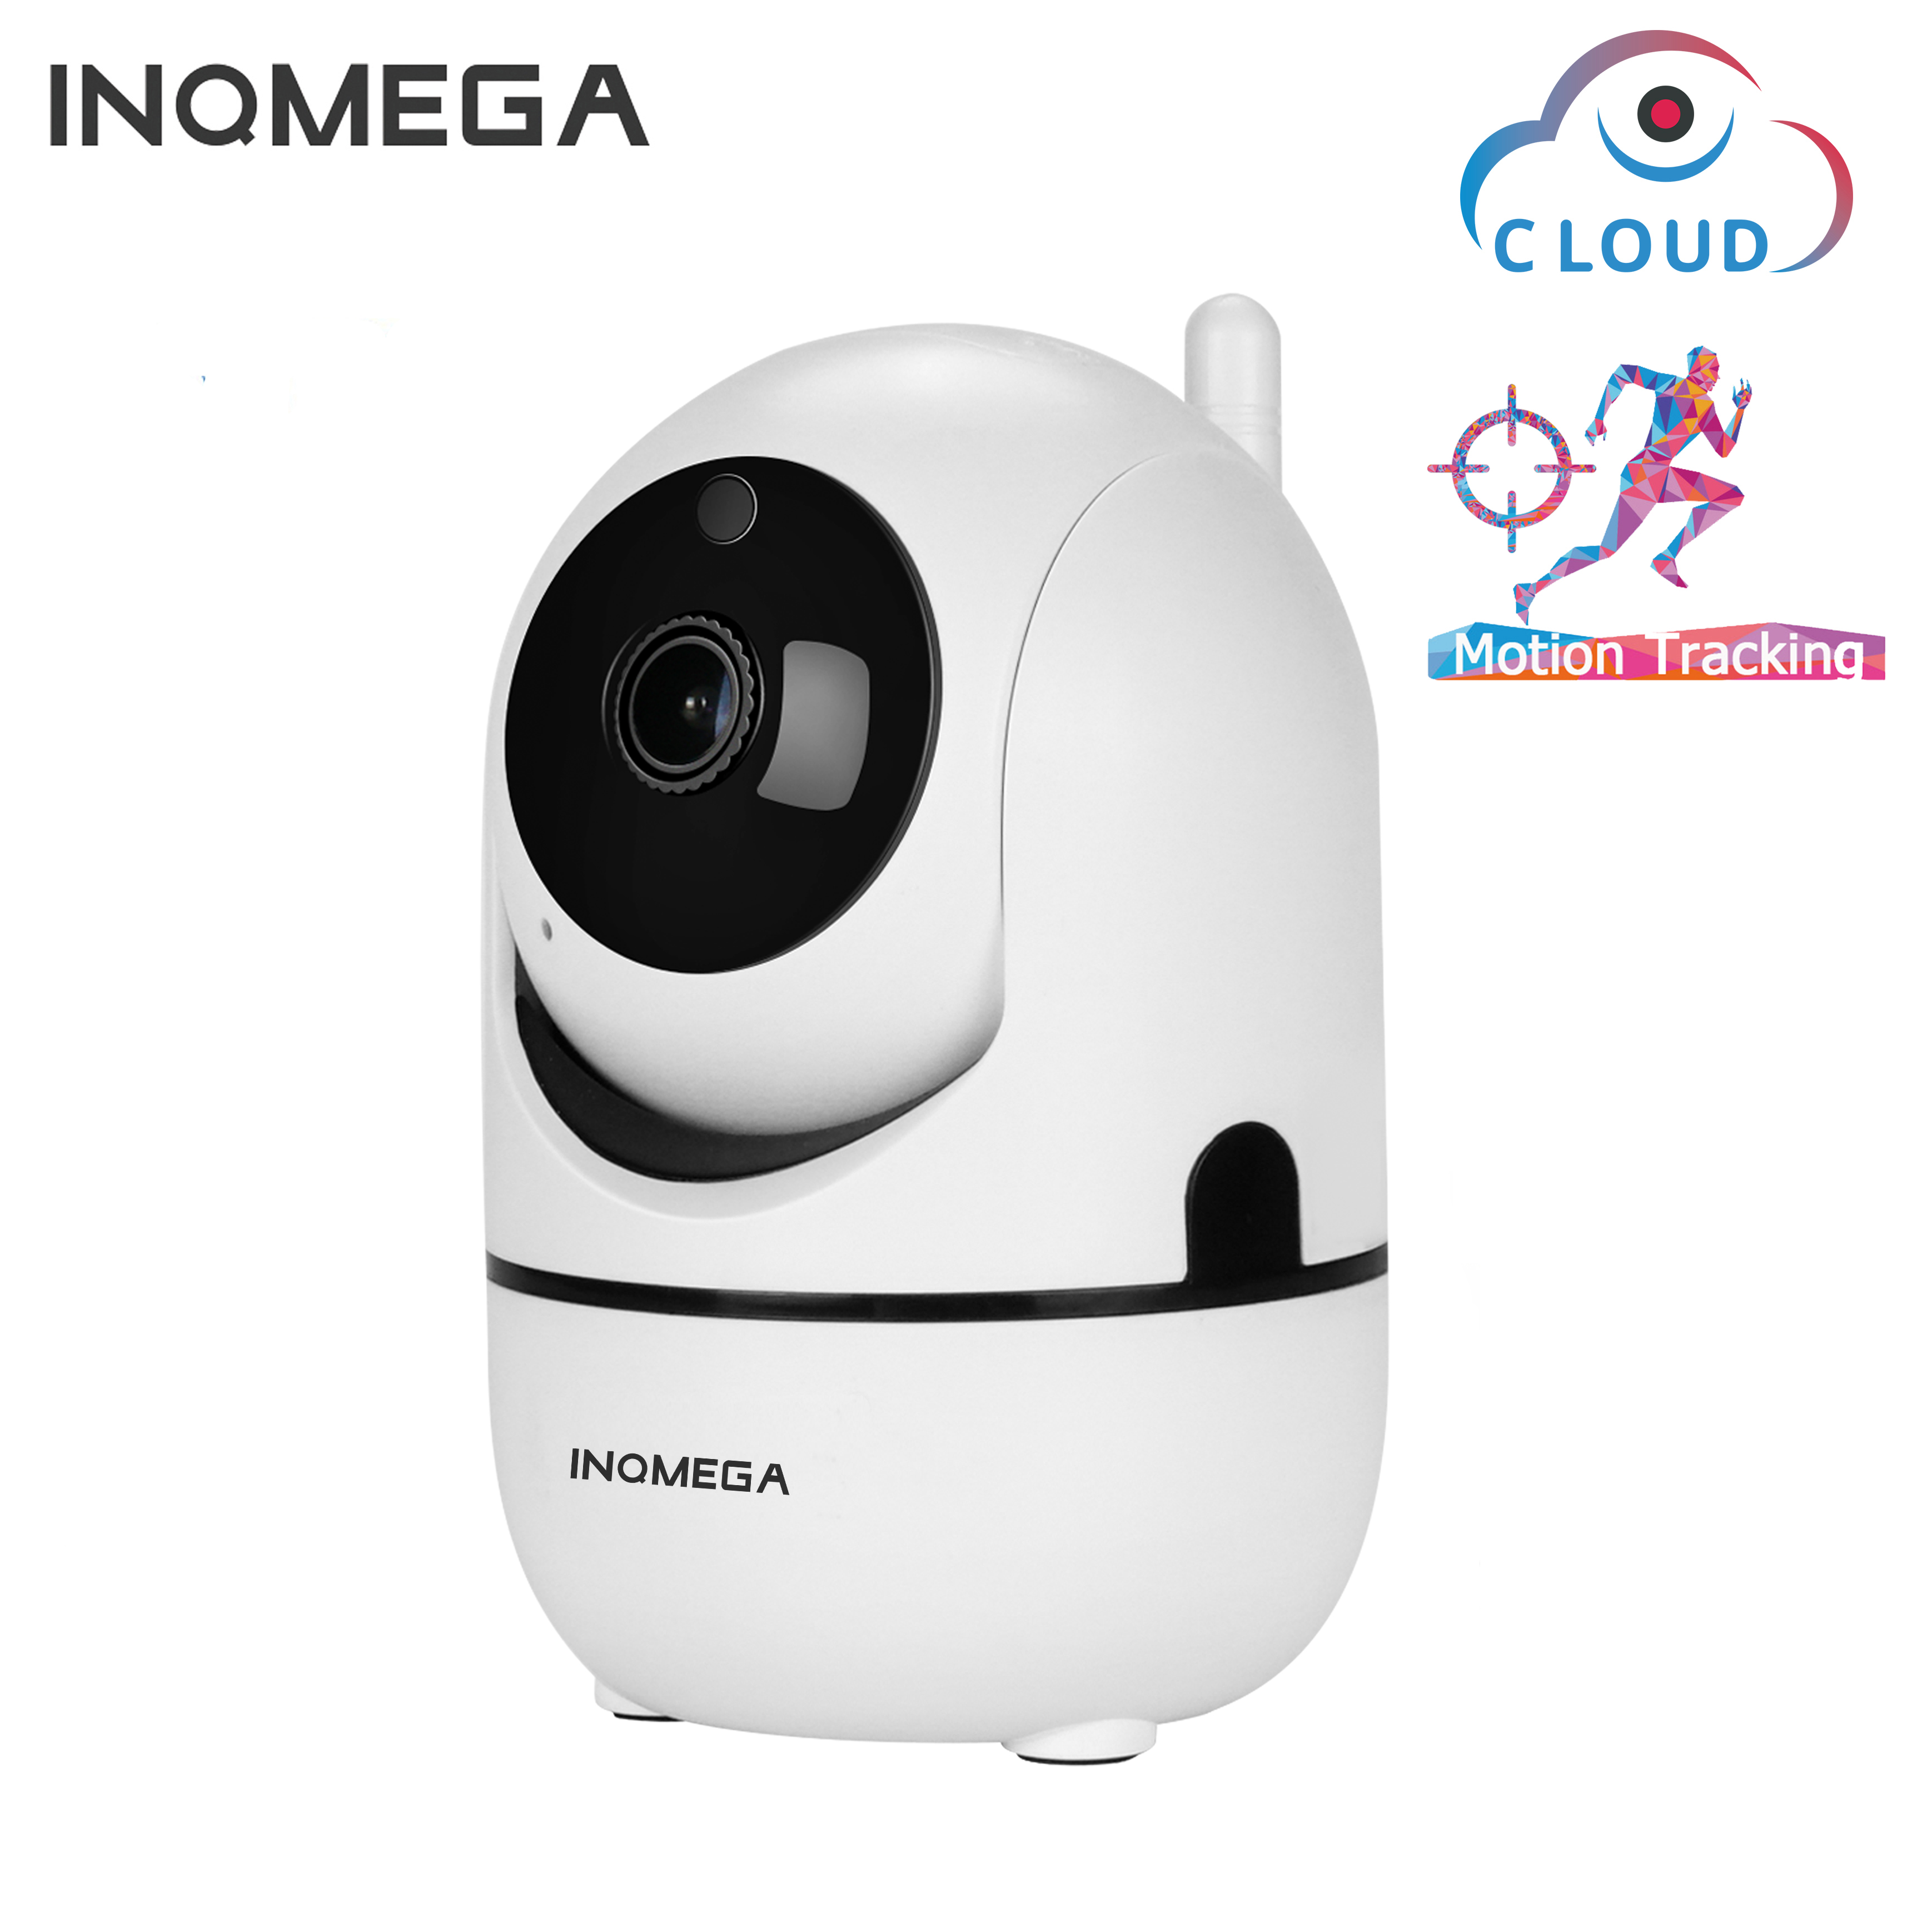 INQMEGA 1080P Cloud Wireless IP Camera Intelligent Auto Tracking Of Human Home Security Surveillance CCTV Network Innrech Market.com